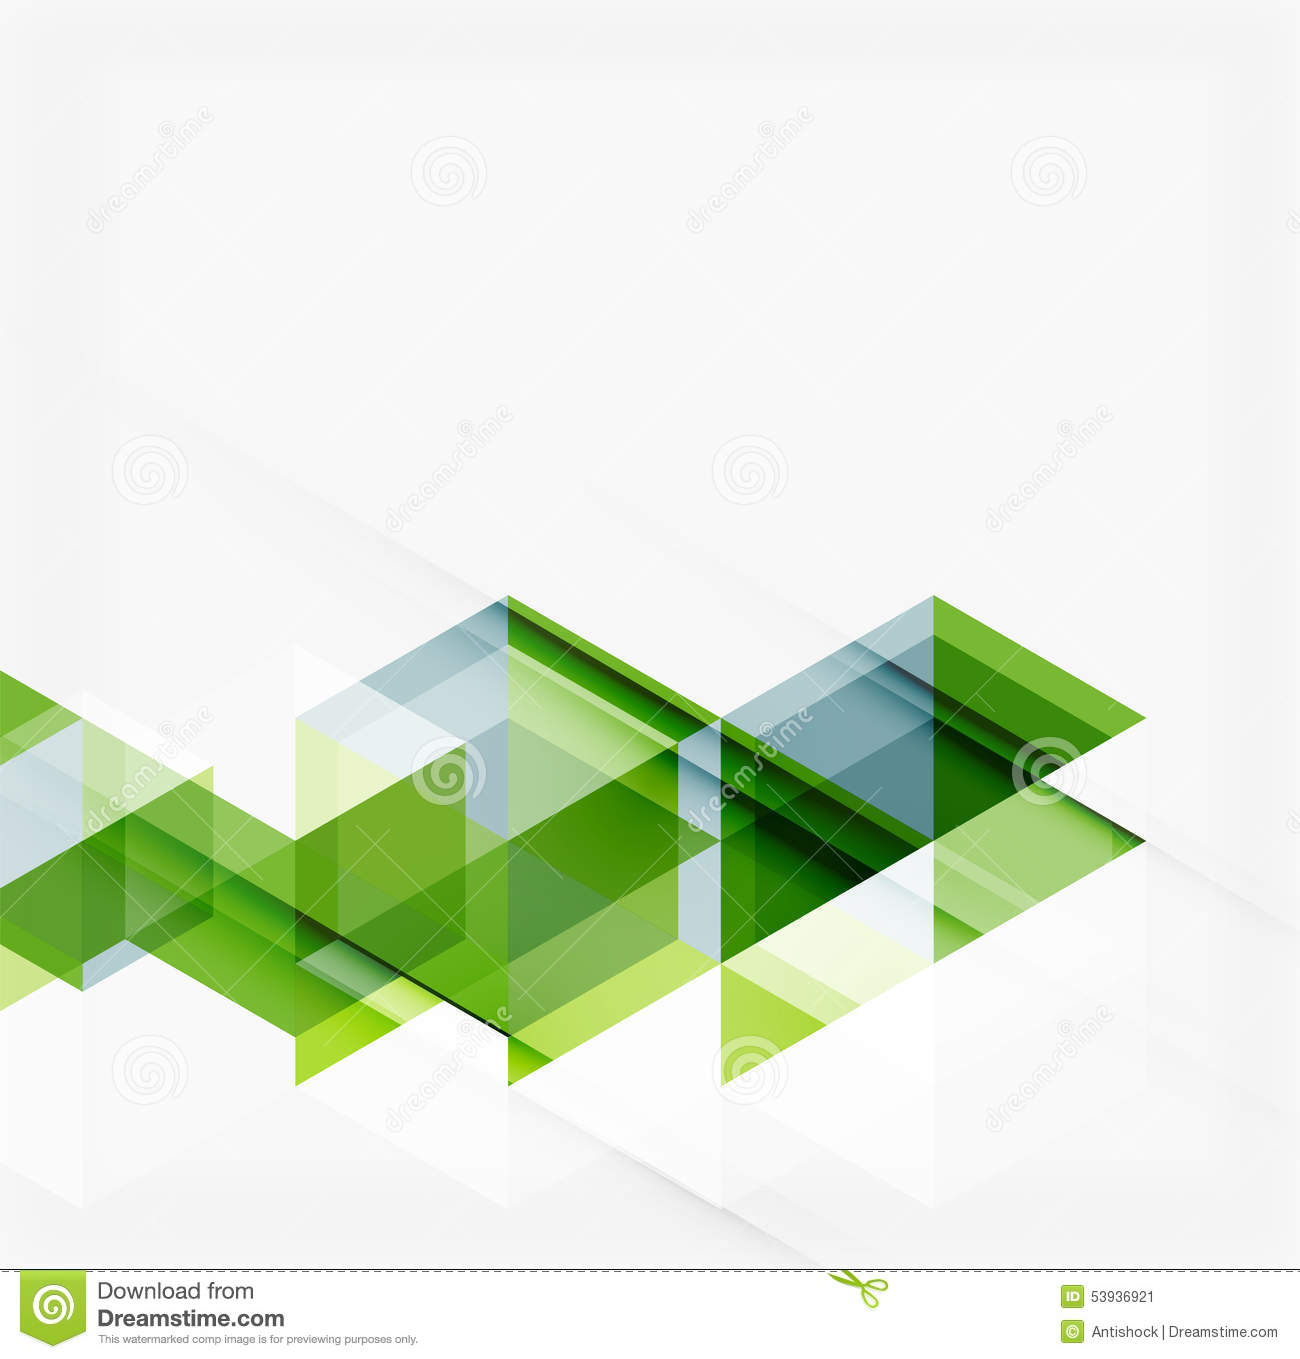 2 background images overlapping - Abstract Geometric Background Modern Overlapping Stock Image